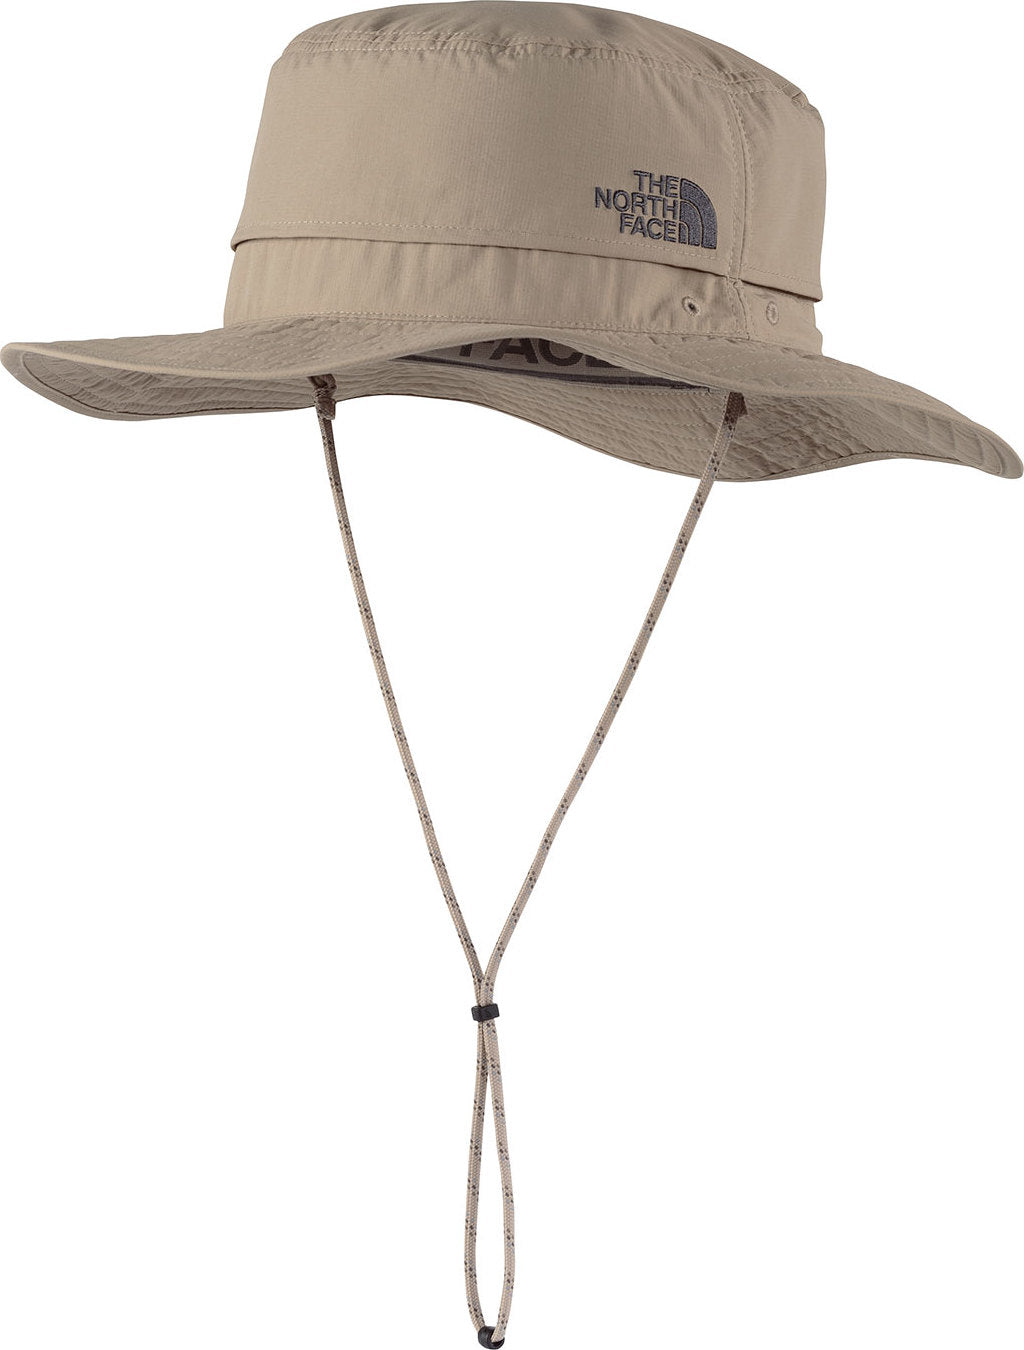 ed1aa6472 The North Face Horizon Breeze Brimmer Hat